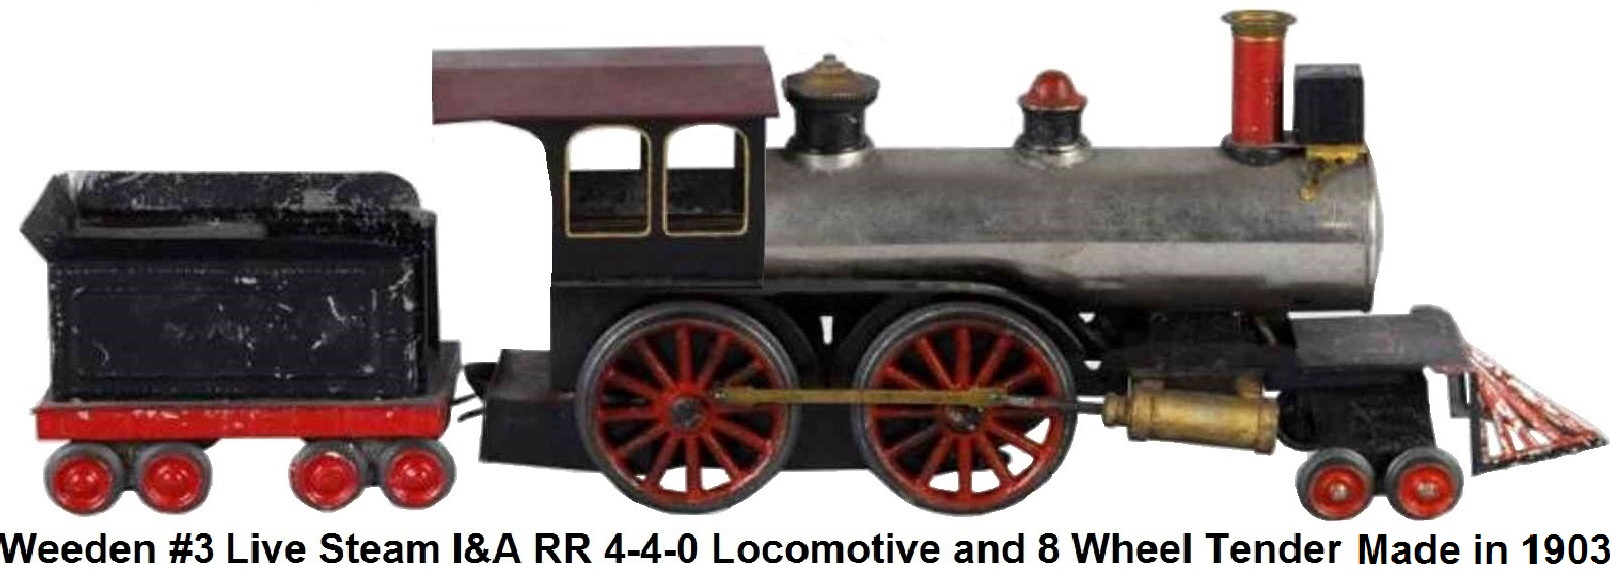 Weeden #3 Live Steam train engine and tender circa 1903 marked I&A RR